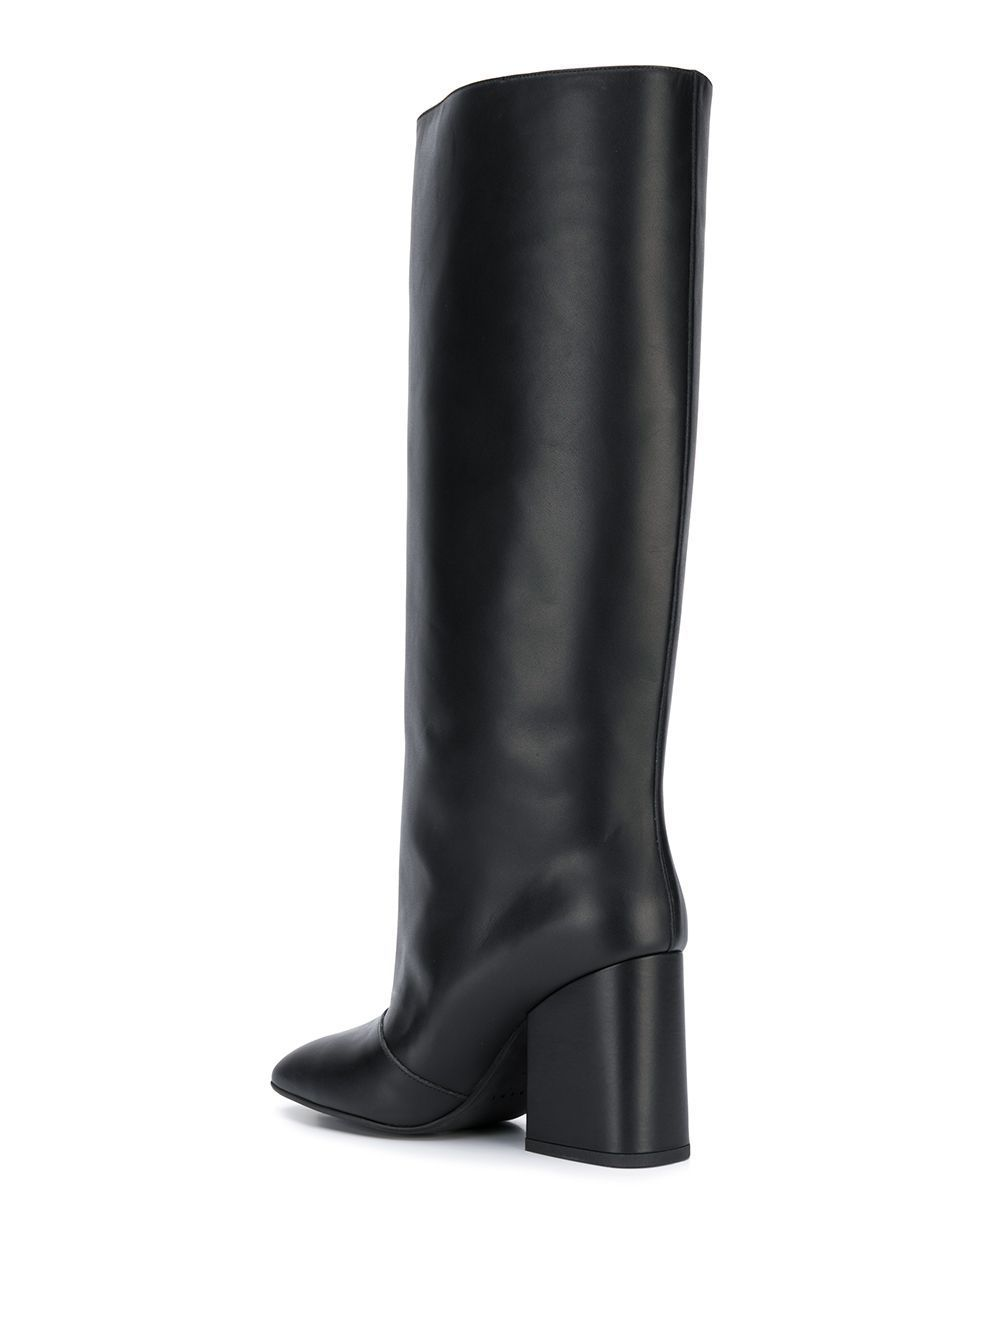 MARNI WOMEN'S STMS001709LV81700N99 BLACK LEATHER BOOTS